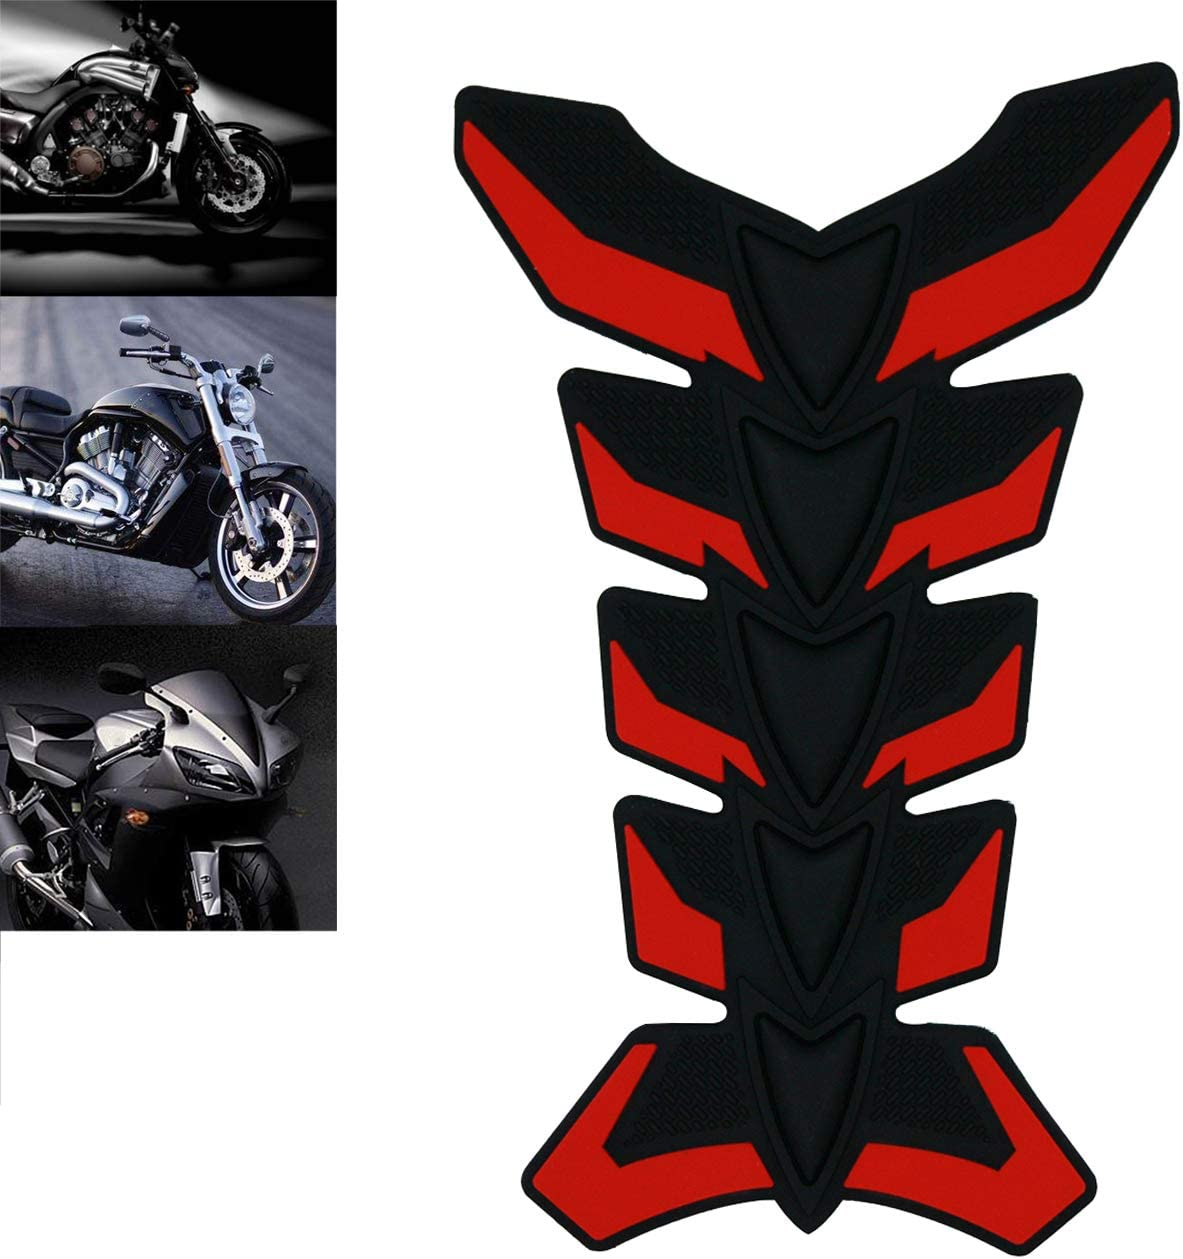 ROADMANSO Motorcycle Fuel Tank Decals 3D Rubber Protector Pad Sticker Black Fit for Harley-Davidson Honda Suzuki Yamaha